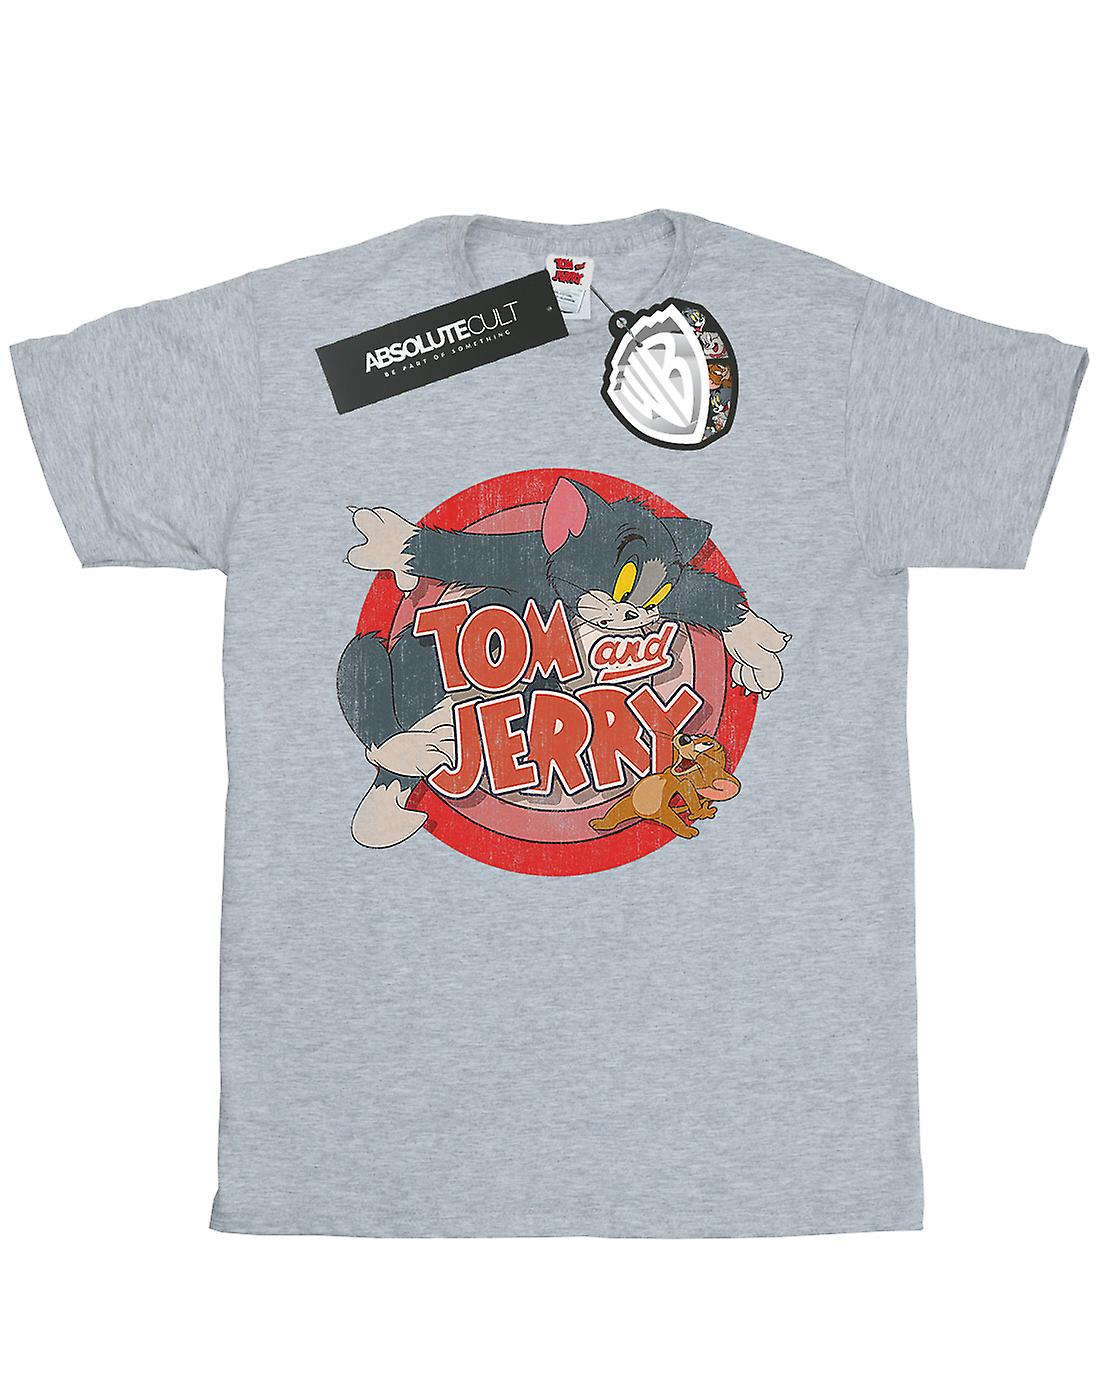 Women's Junk Food Tom & Jerry t shirt size Small